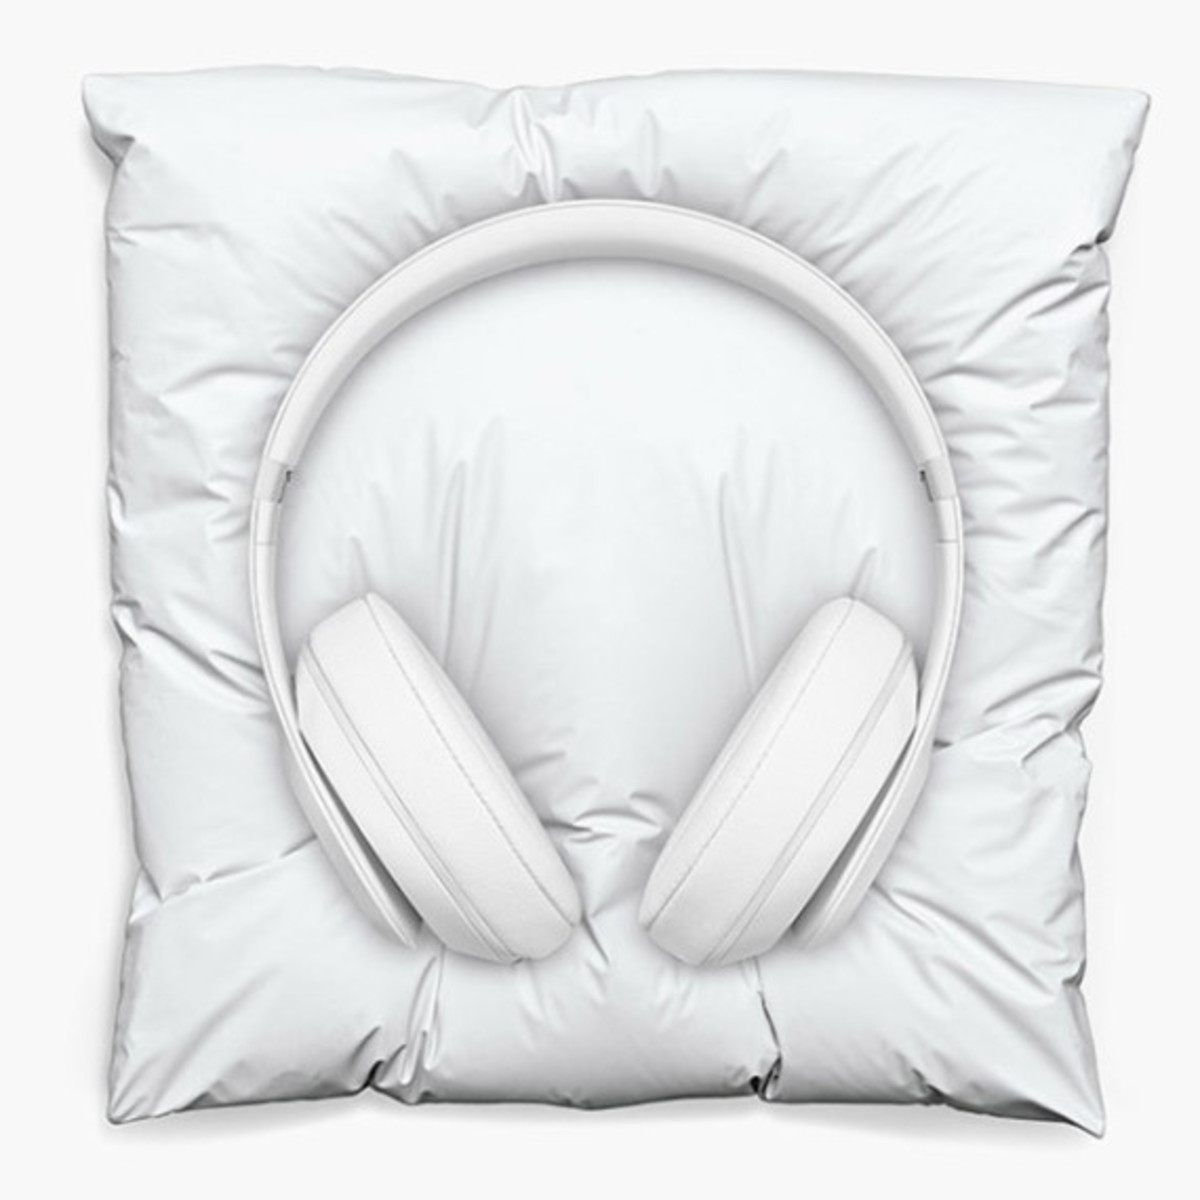 Snarkitecture x Beats By Dr. Dre Studio Headphones - 3